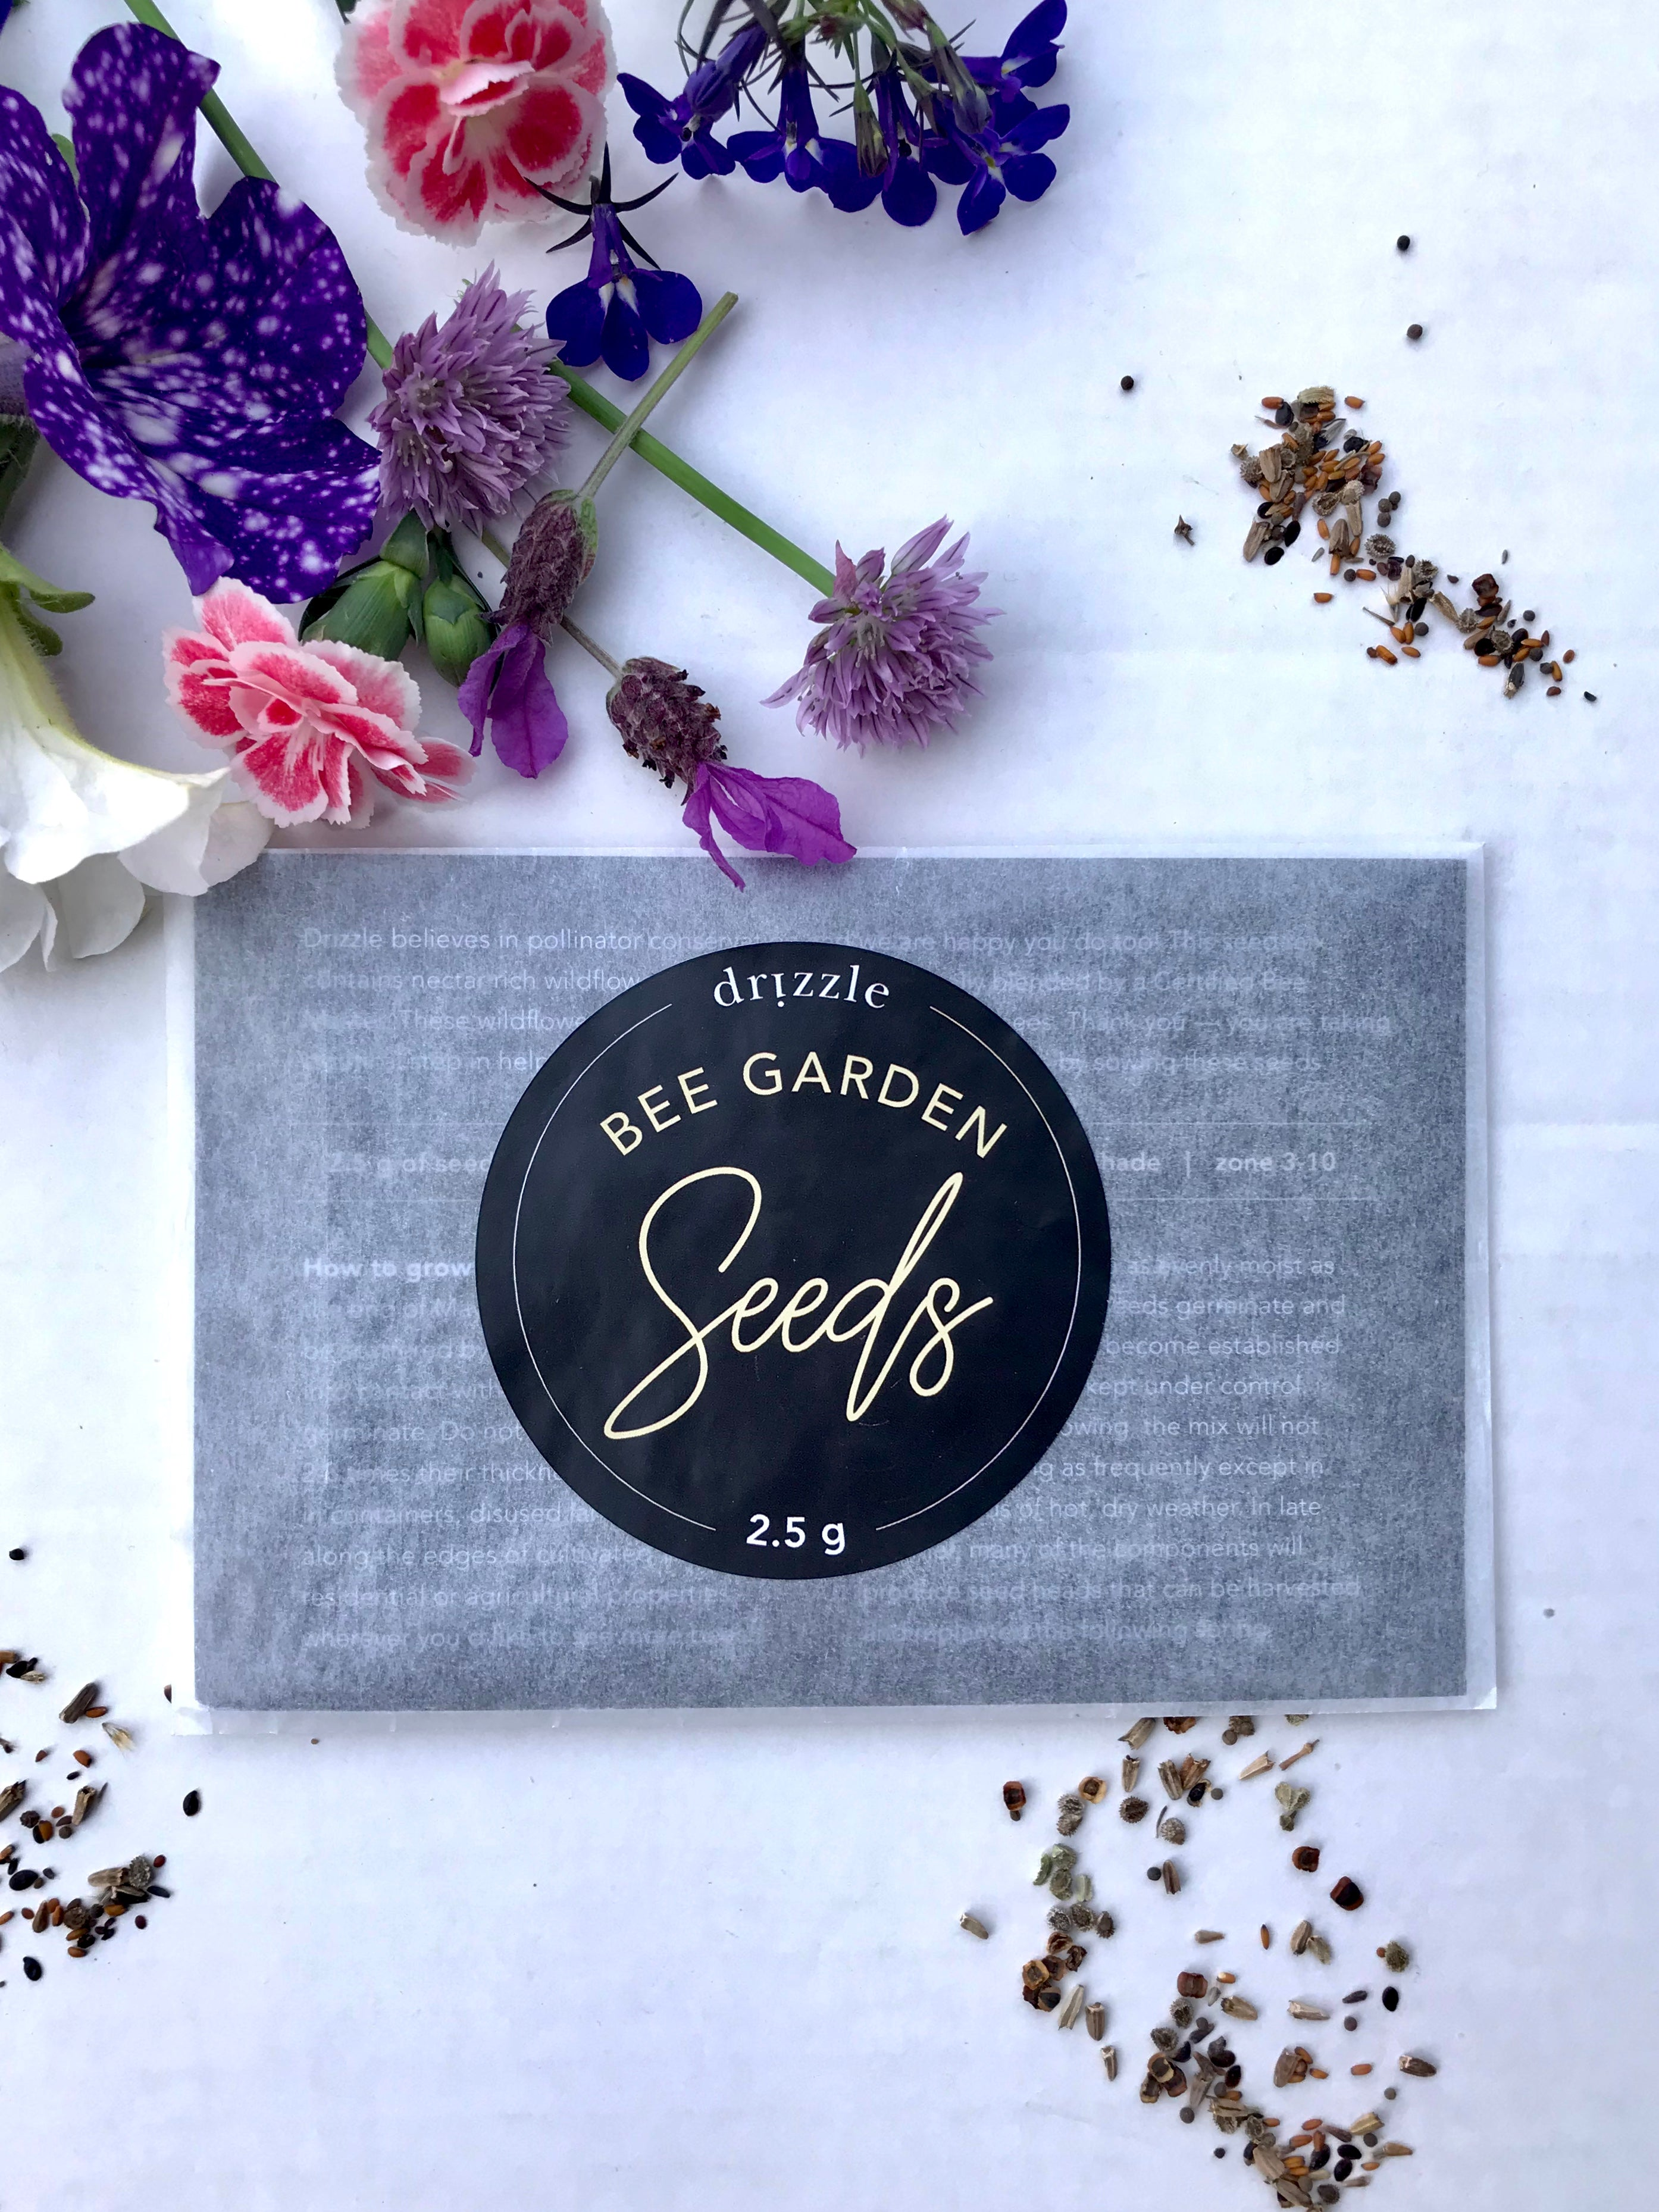 Drizzle Bee Garden Seeds